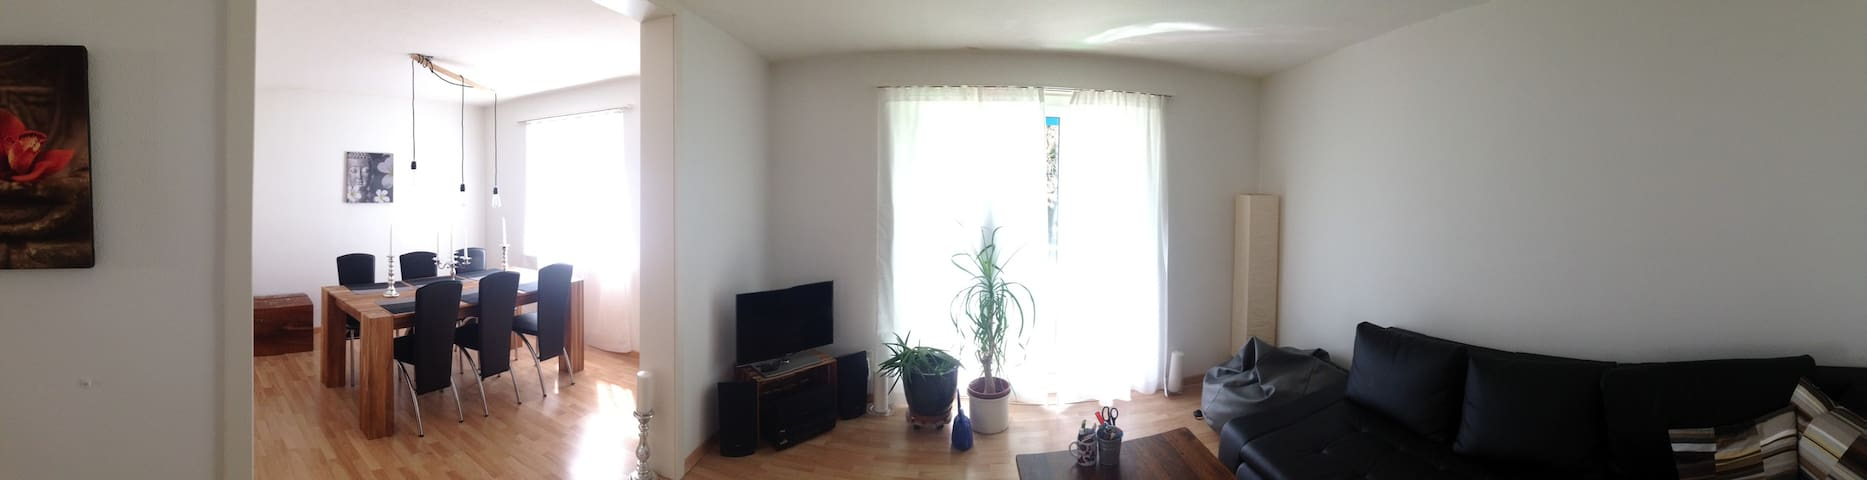 3.5 room appartment in Baar - Baar - Byt